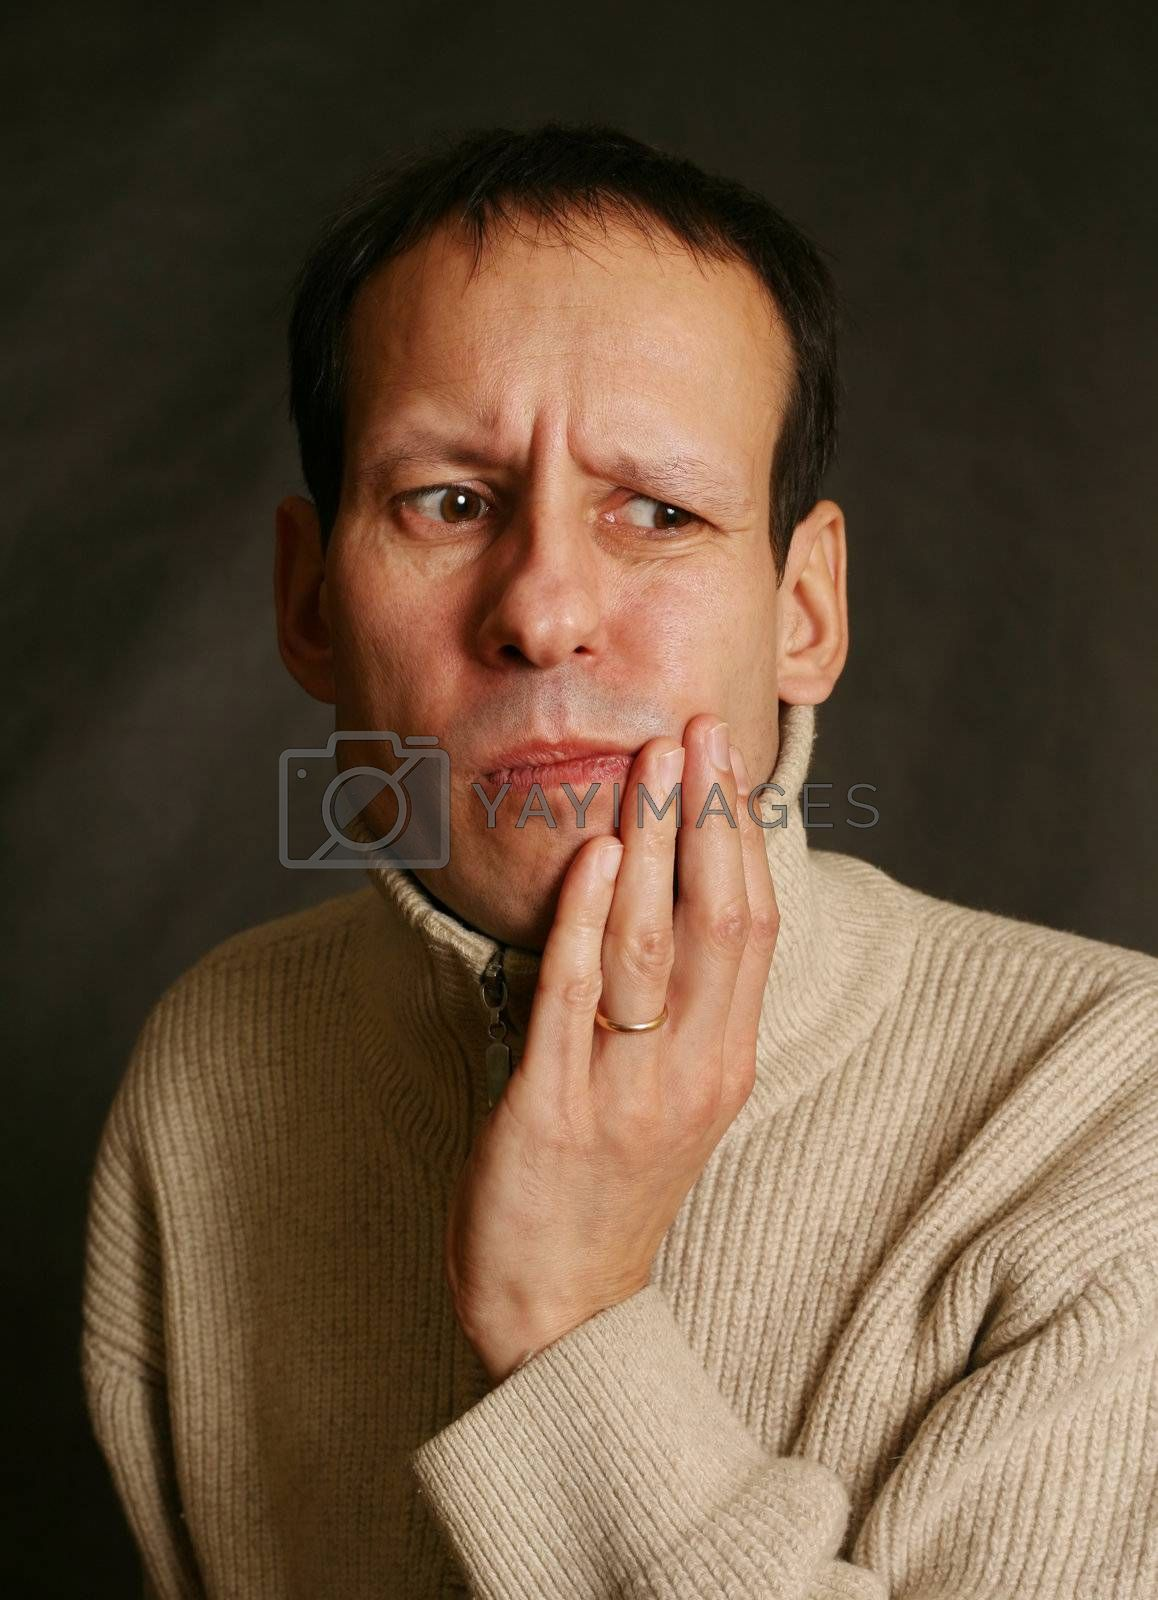 Adult man with toothache on dark background